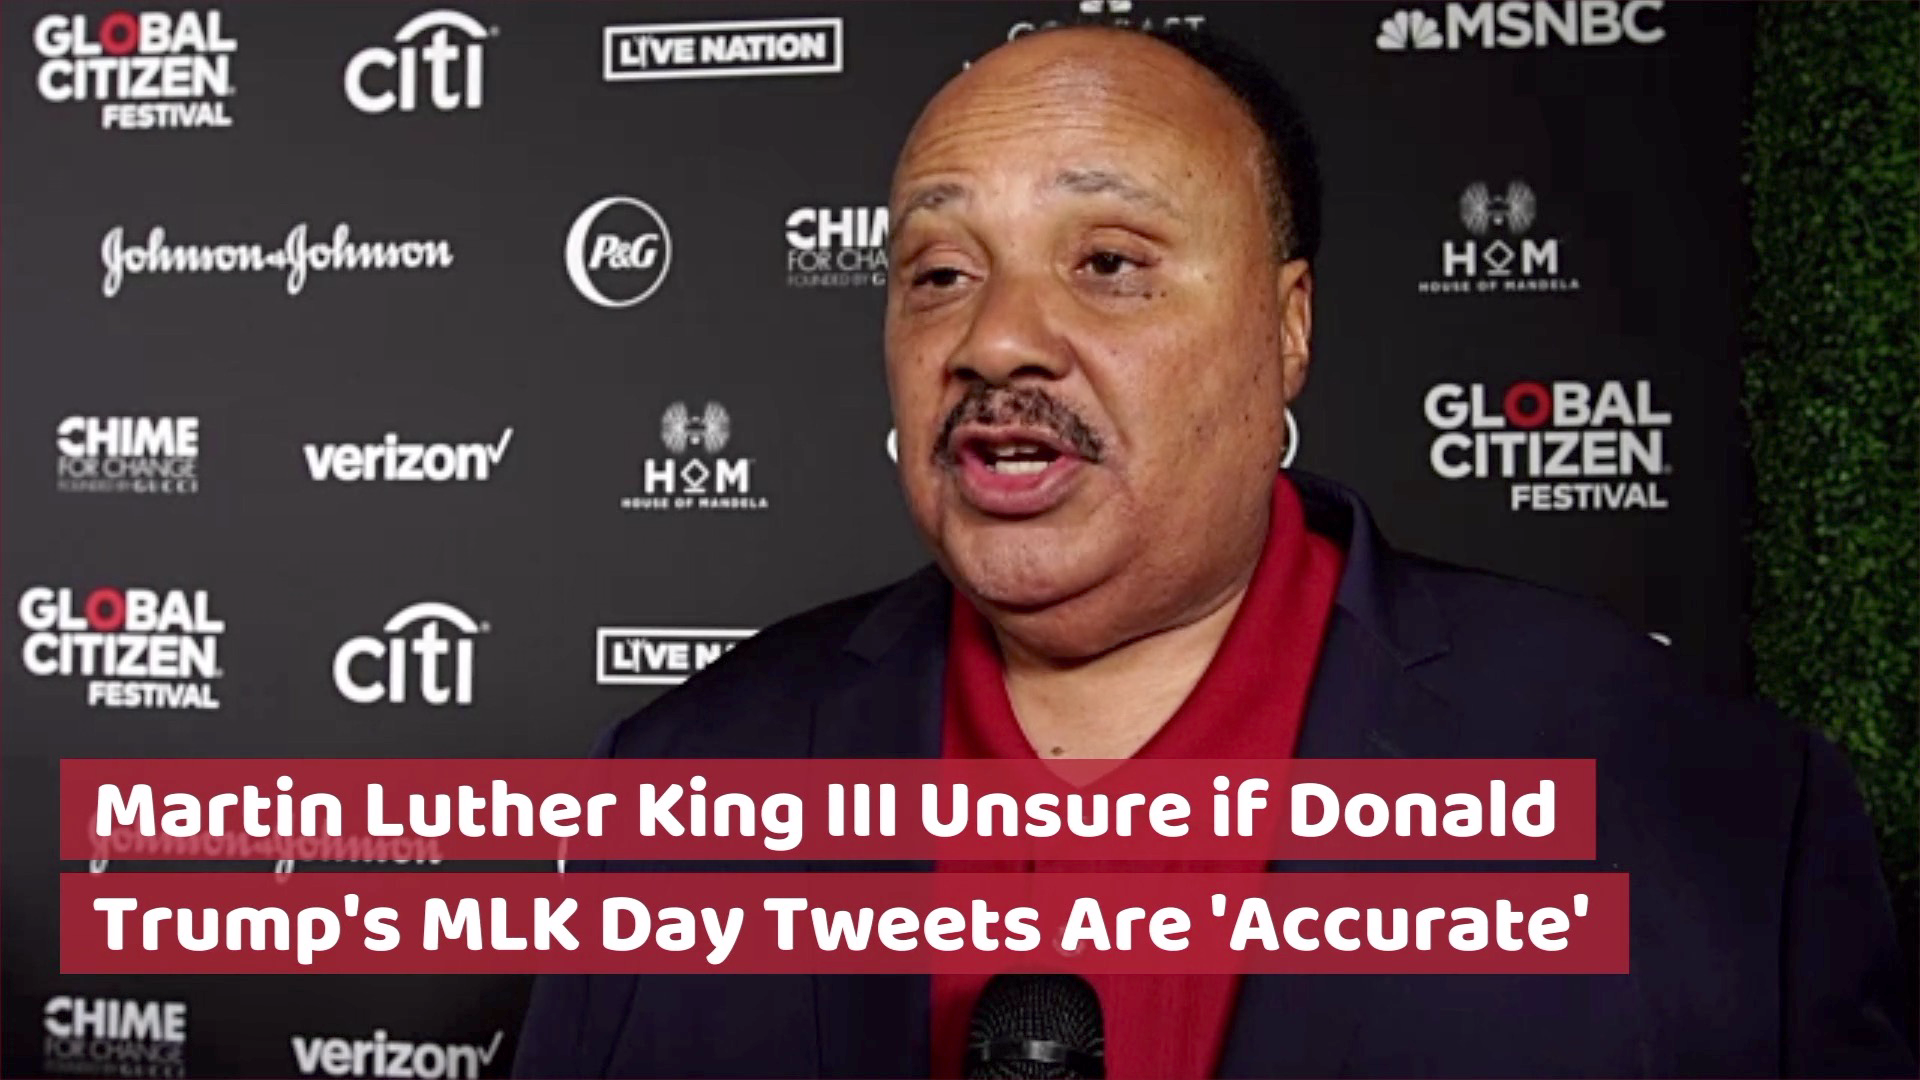 Martin Luther King III On Trump Tweets